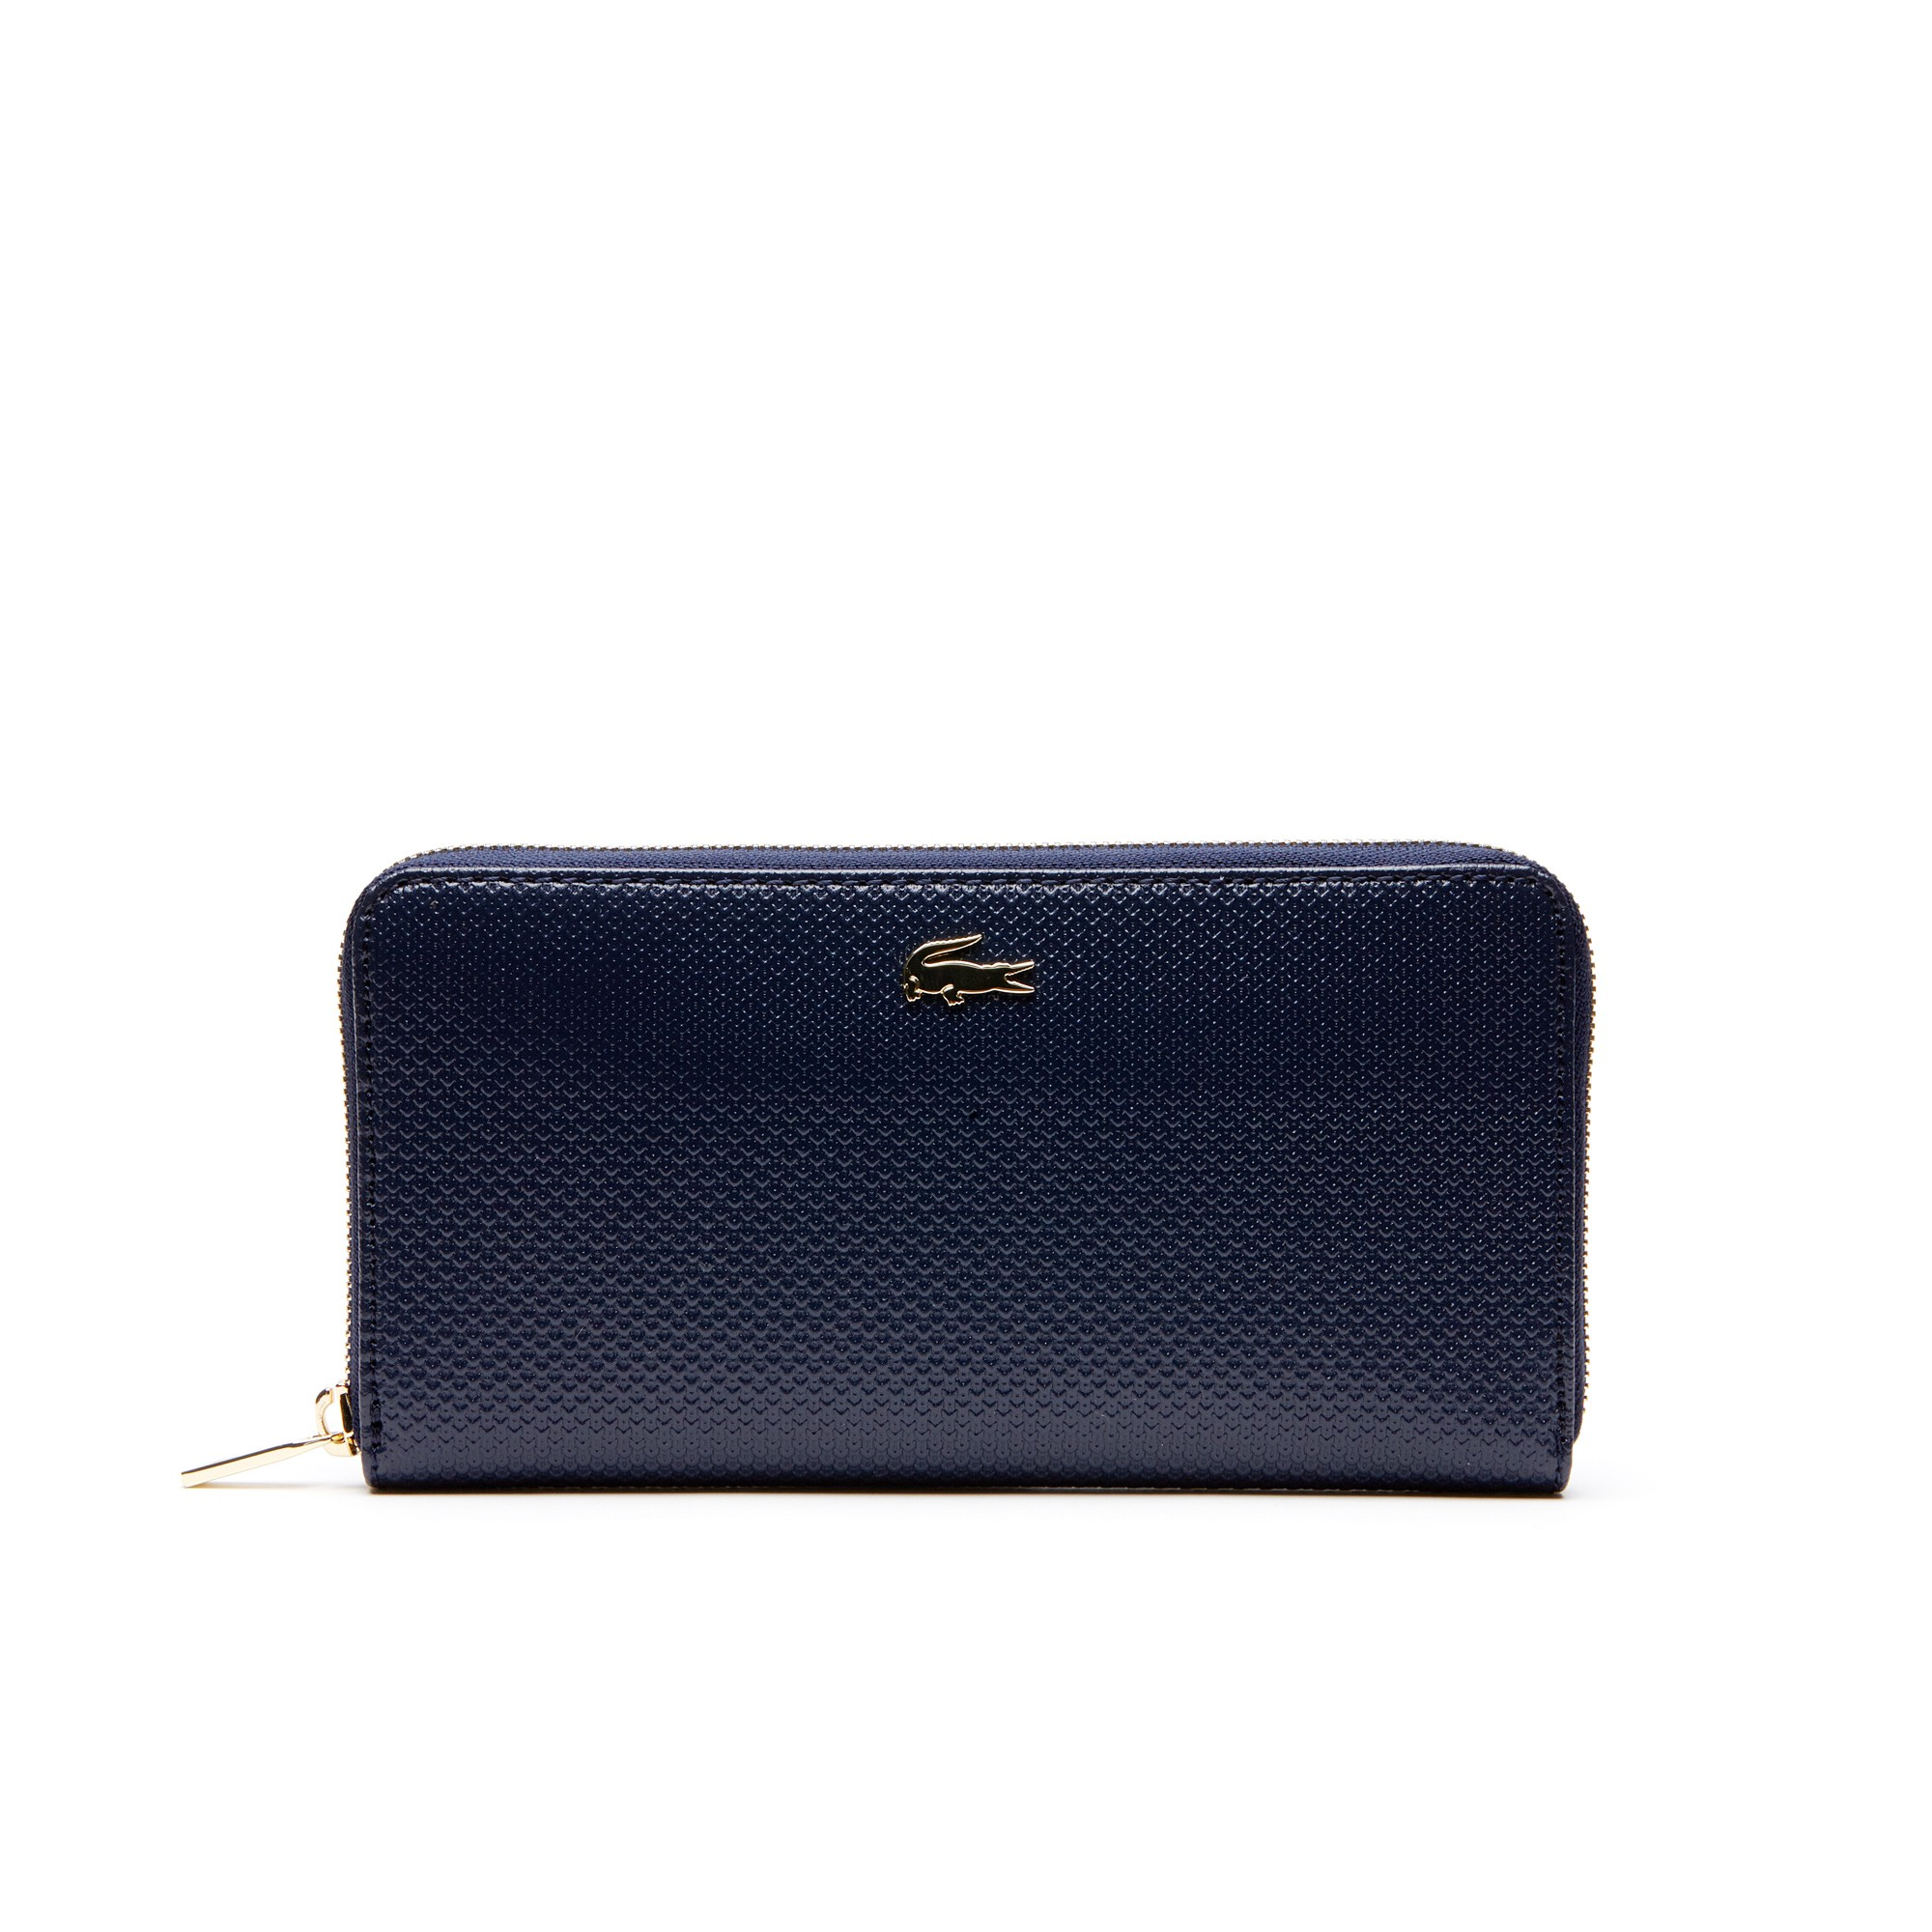 643cbf3d0035 LACOSTE Women's Chantaco Piqué Leather Zip Wallet - peacoat. #lacoste #